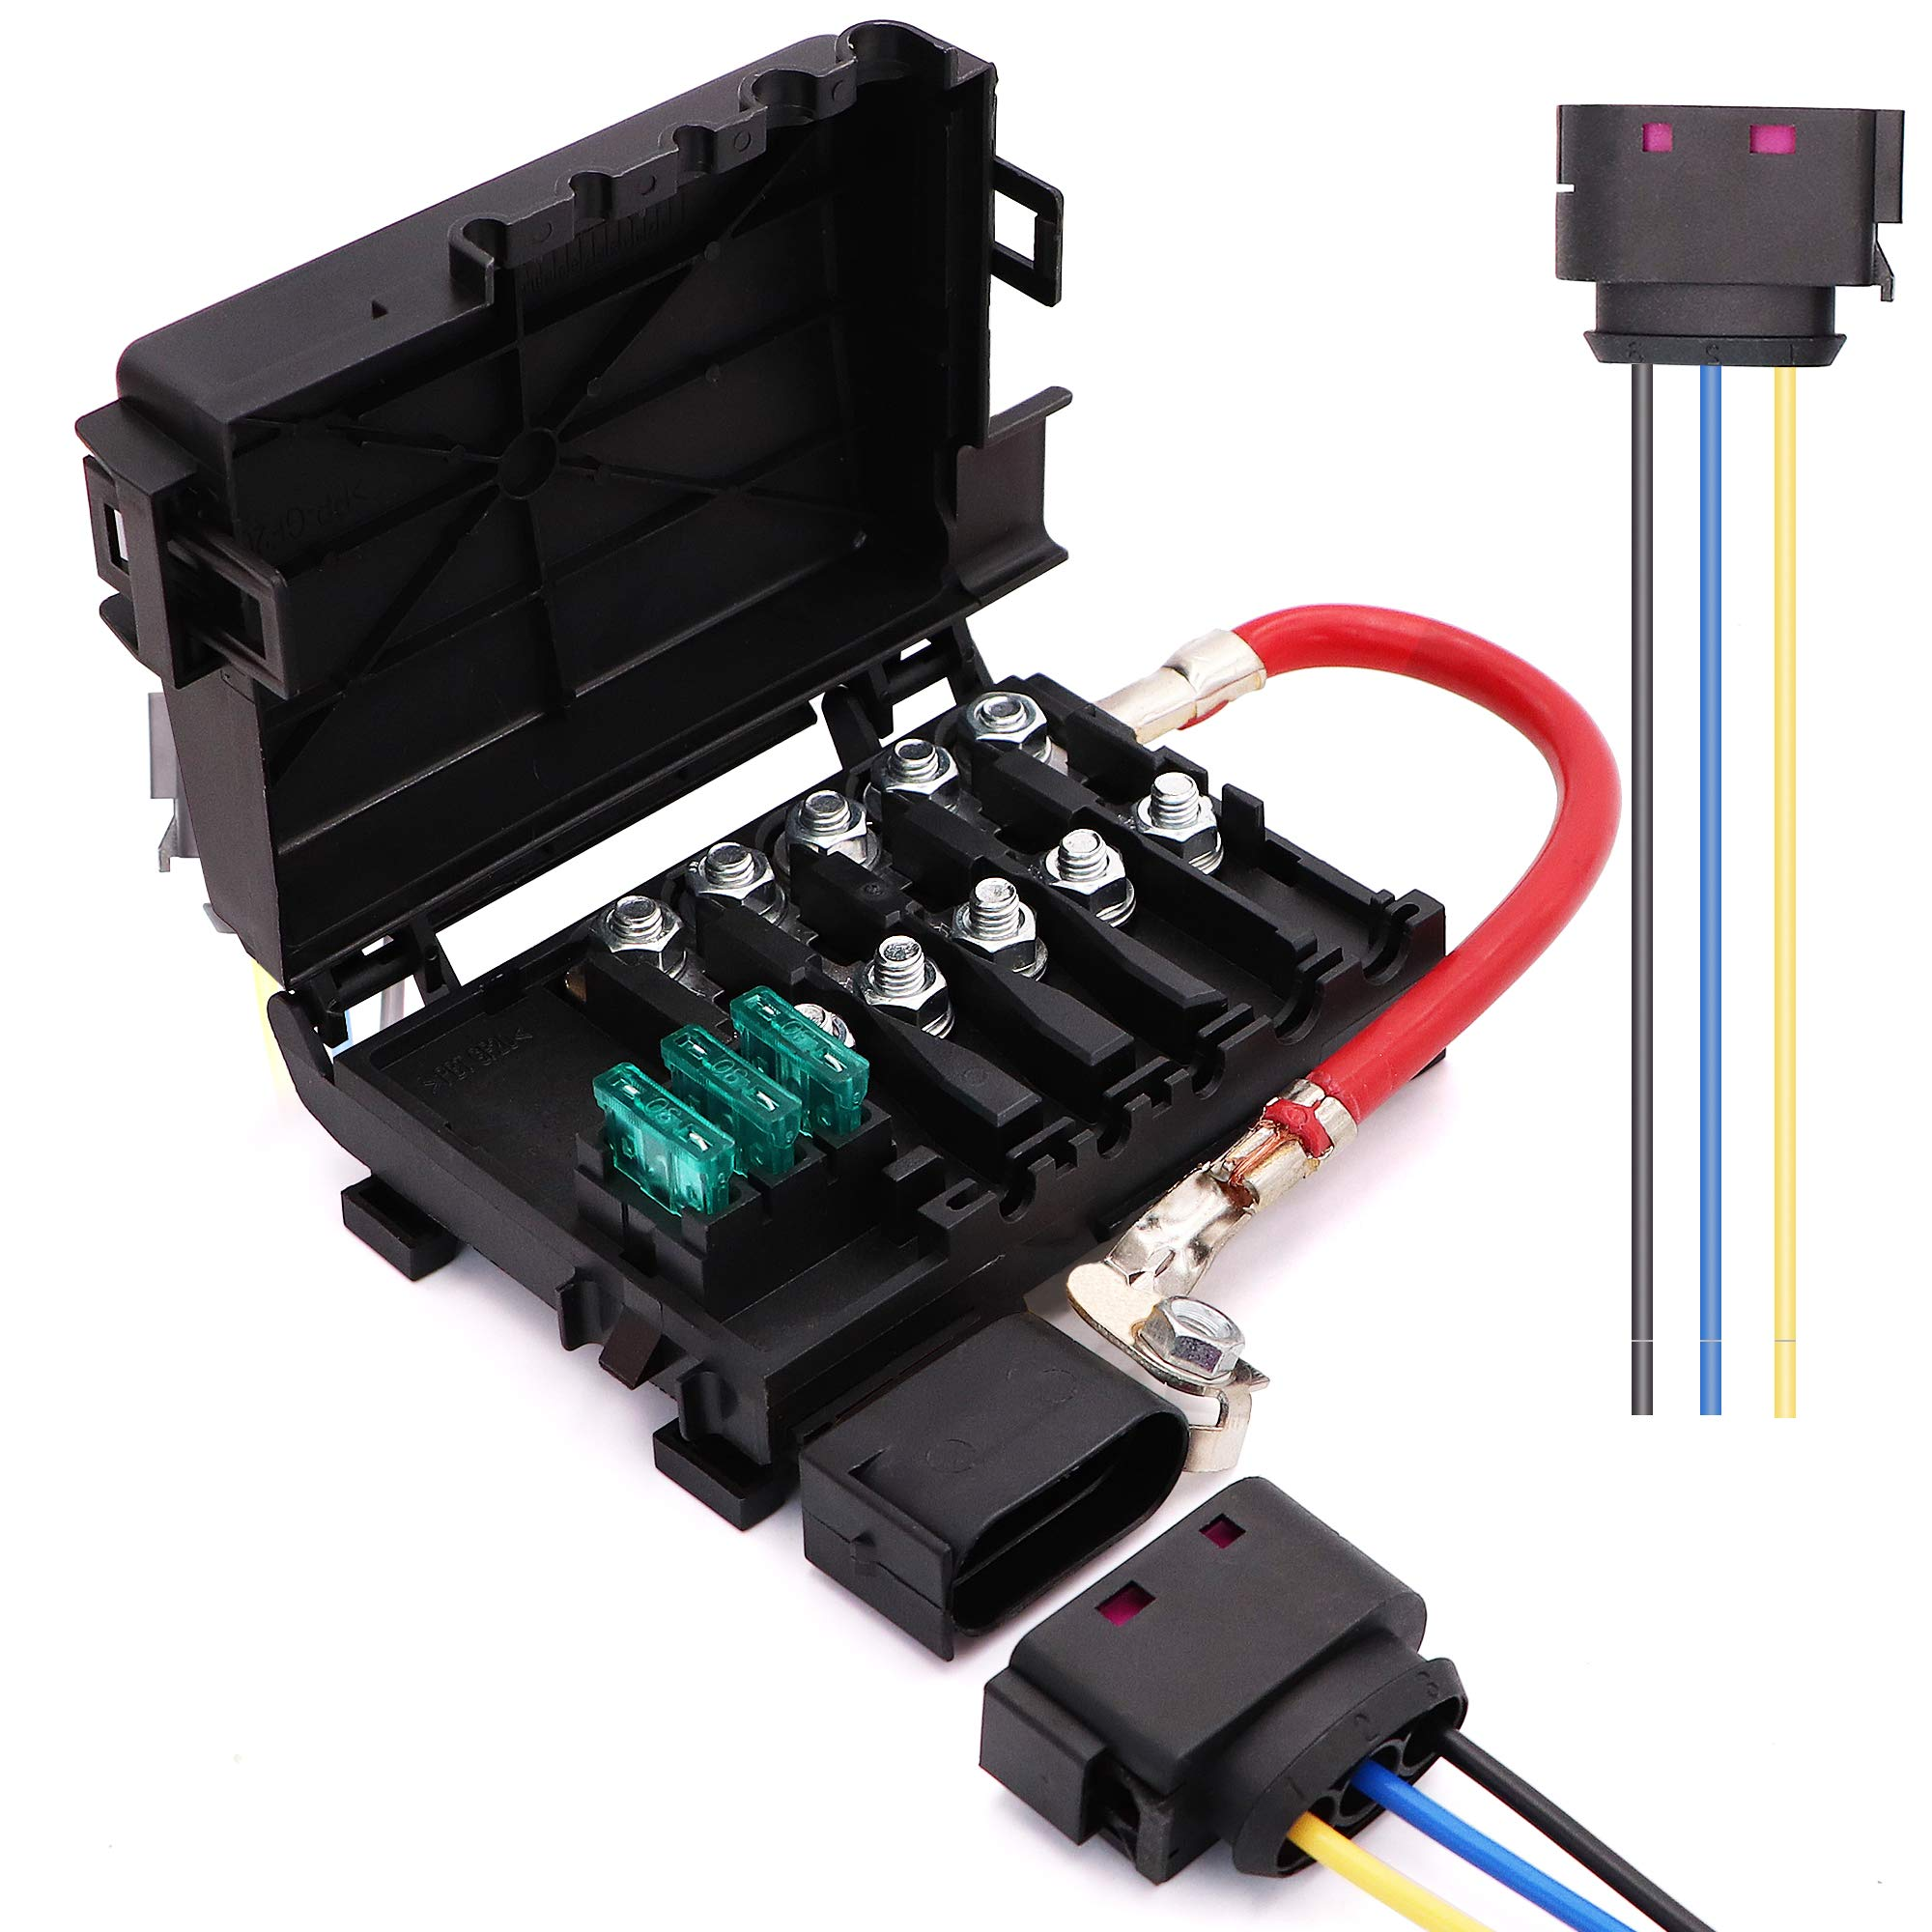 battery fuse box terminal 1j0937550 compatible with 99-04 vw beetle jetta  bora golf mk4 with wiring harness pigtail connector- buy online in bulgaria  at bulgaria.desertcart.com. productid : 170803987.  desertcart